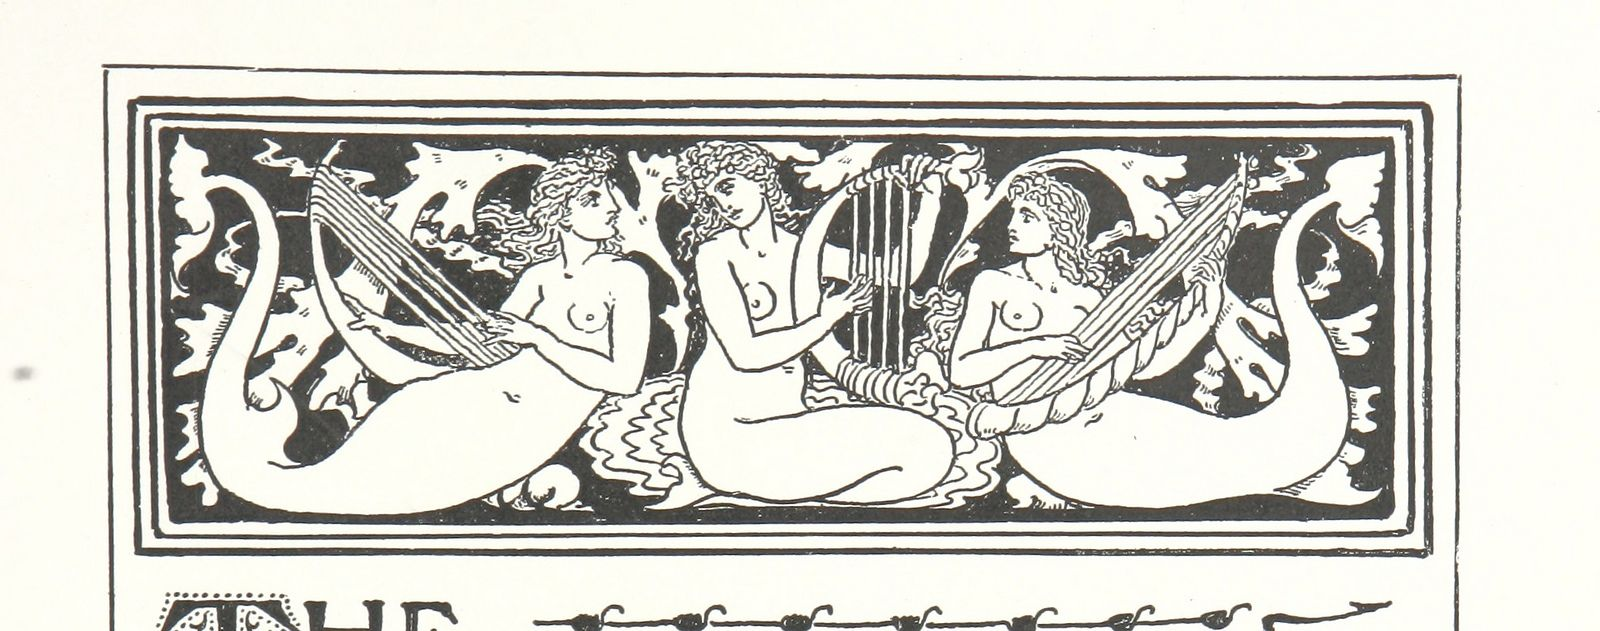 """https://flic.kr/p/icrJMr 